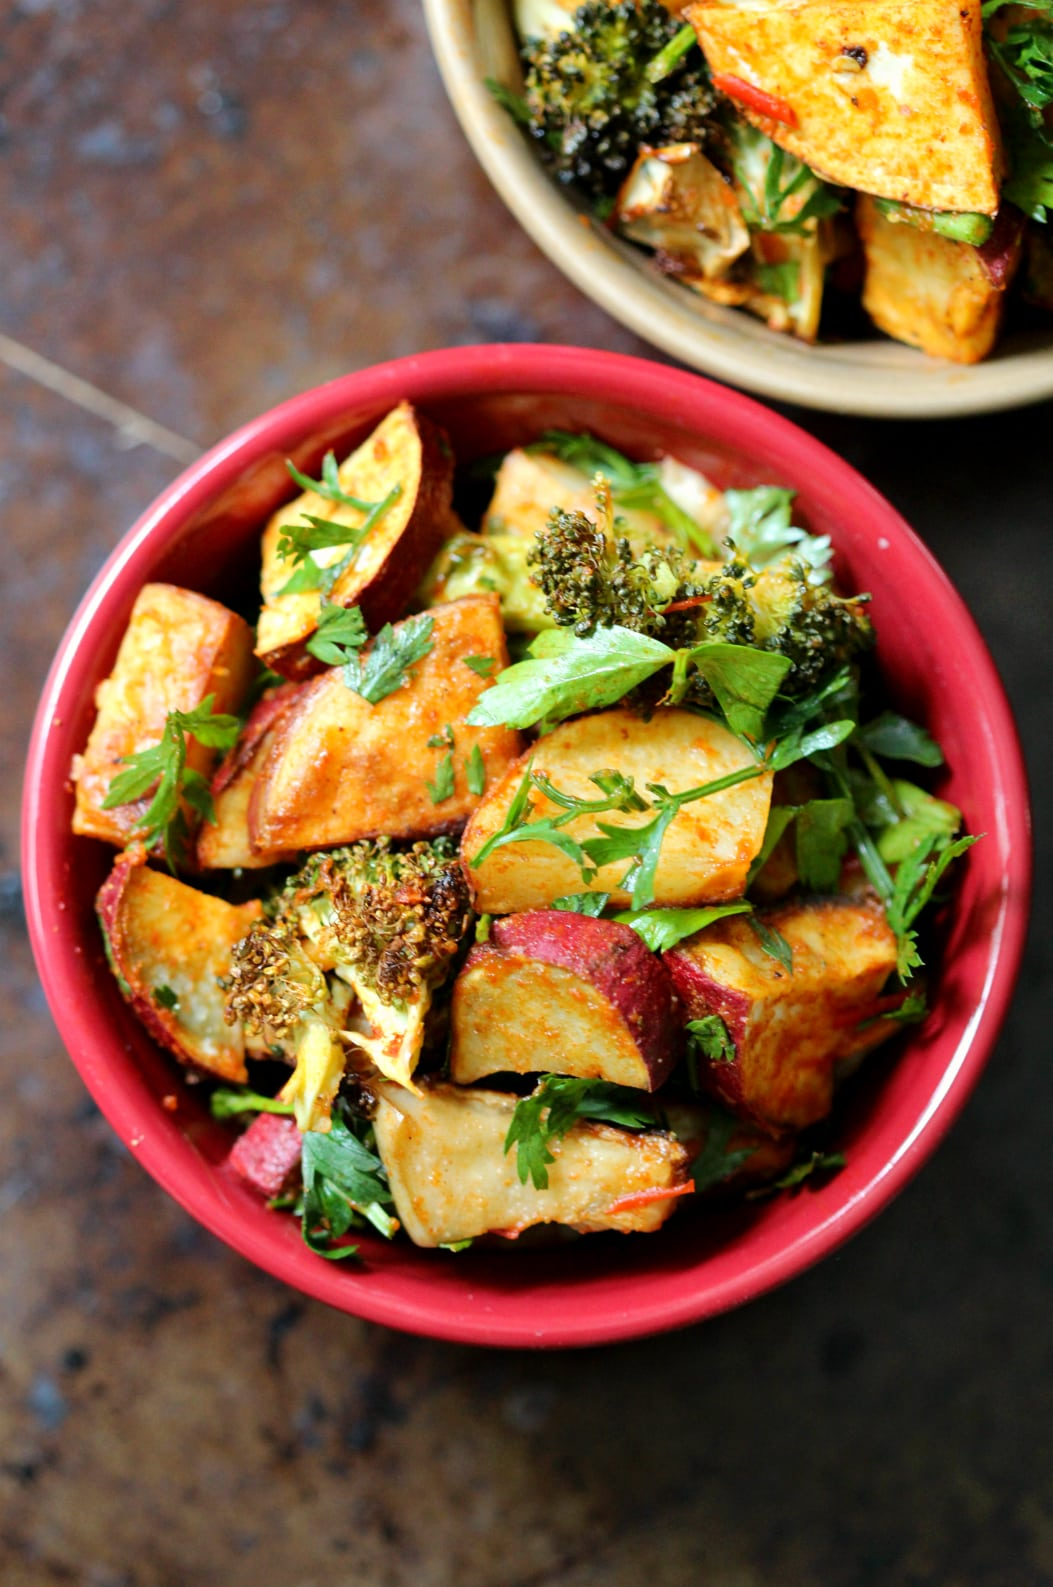 40 delicious and healthy vegan salad recipes picture of harissa potato salad from recipe roundup